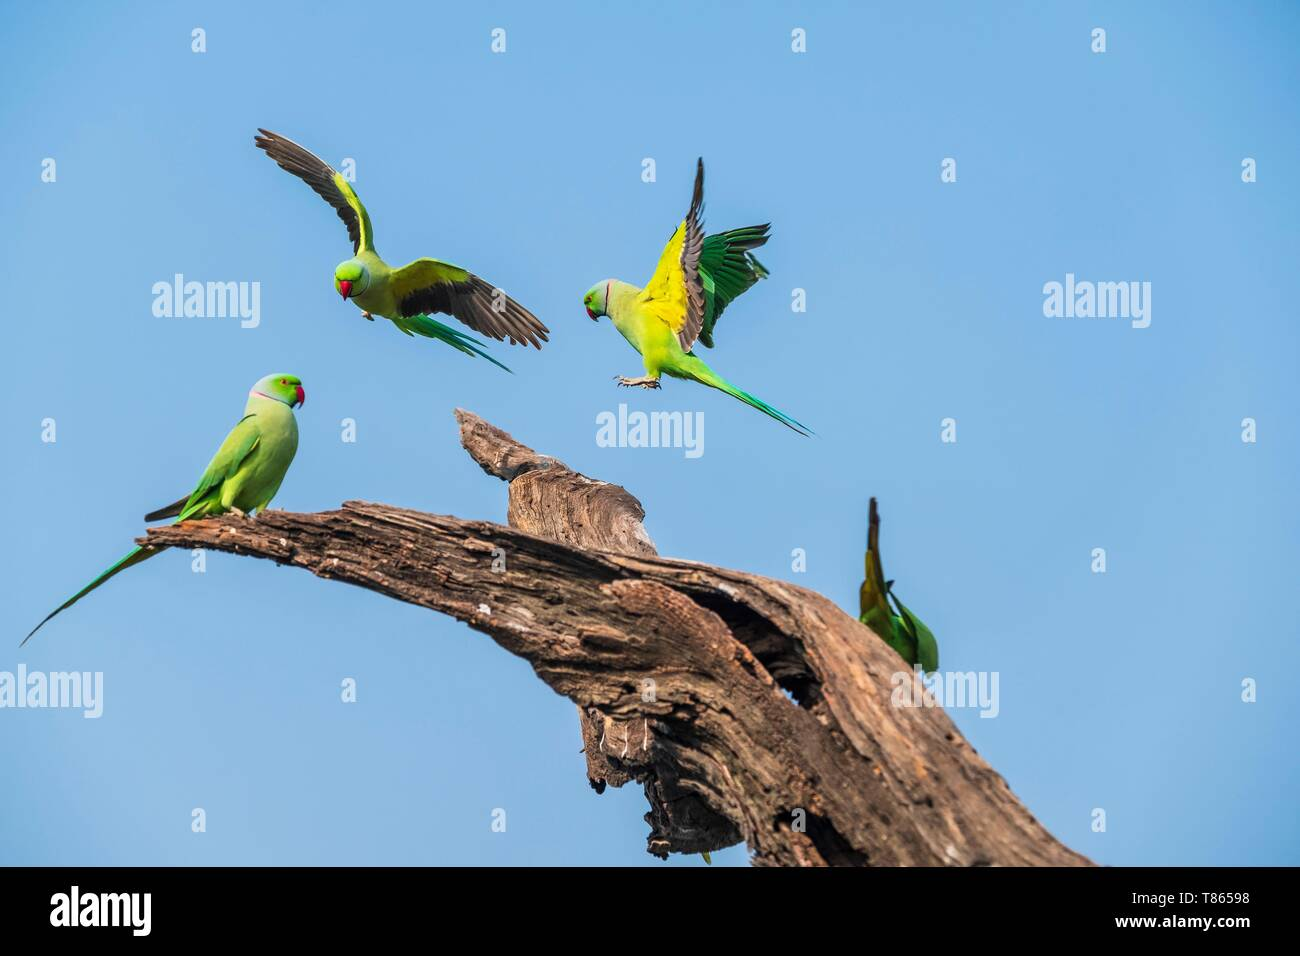 India, Rajasthan, Bharatpur, Keoladeo National Park (or Keoladeo Ghana National Park), a UNESCO World Heritage Site, is home to about 230 bird species, parakeets - Stock Image